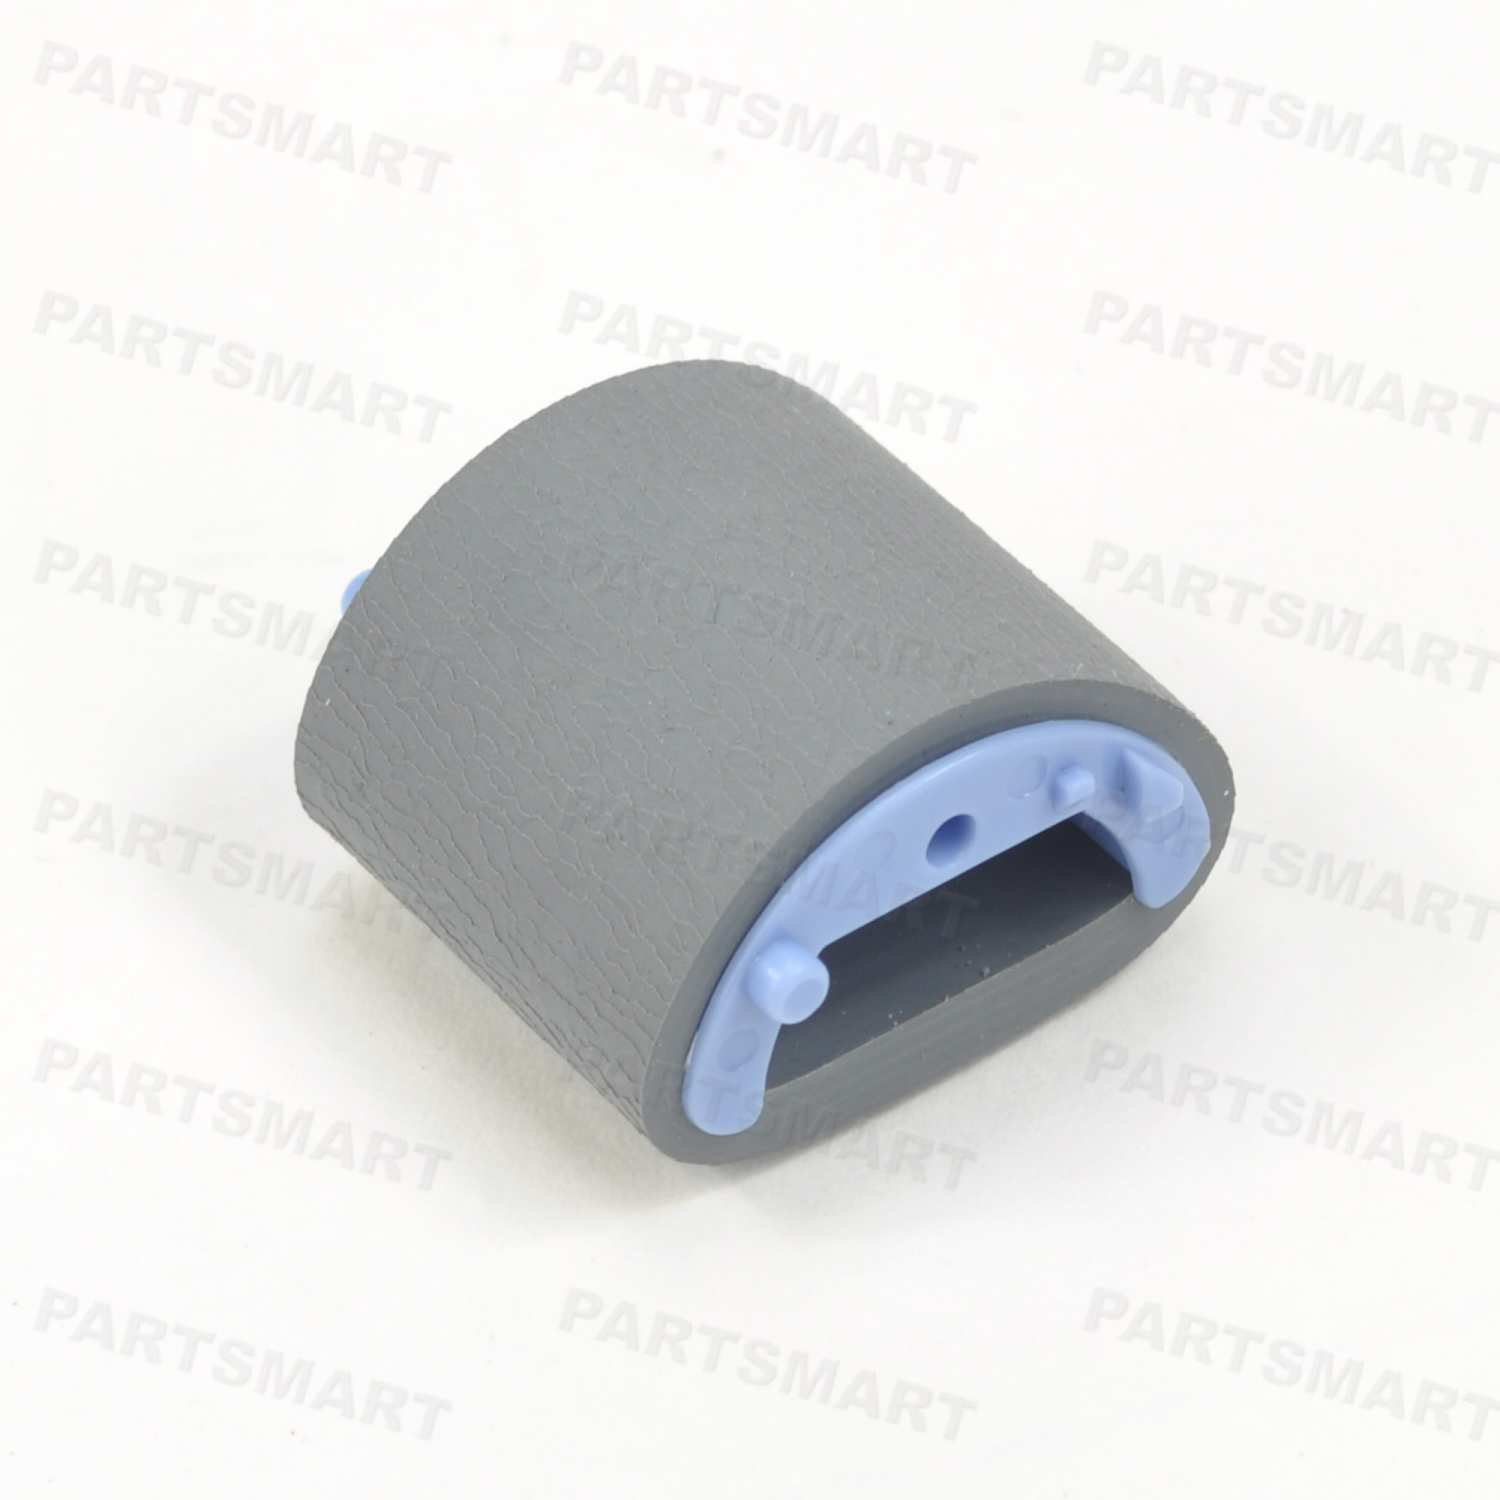 RL1-0266-000 Pickup Roller for HP LaserJet 1010, LaserJet 1020